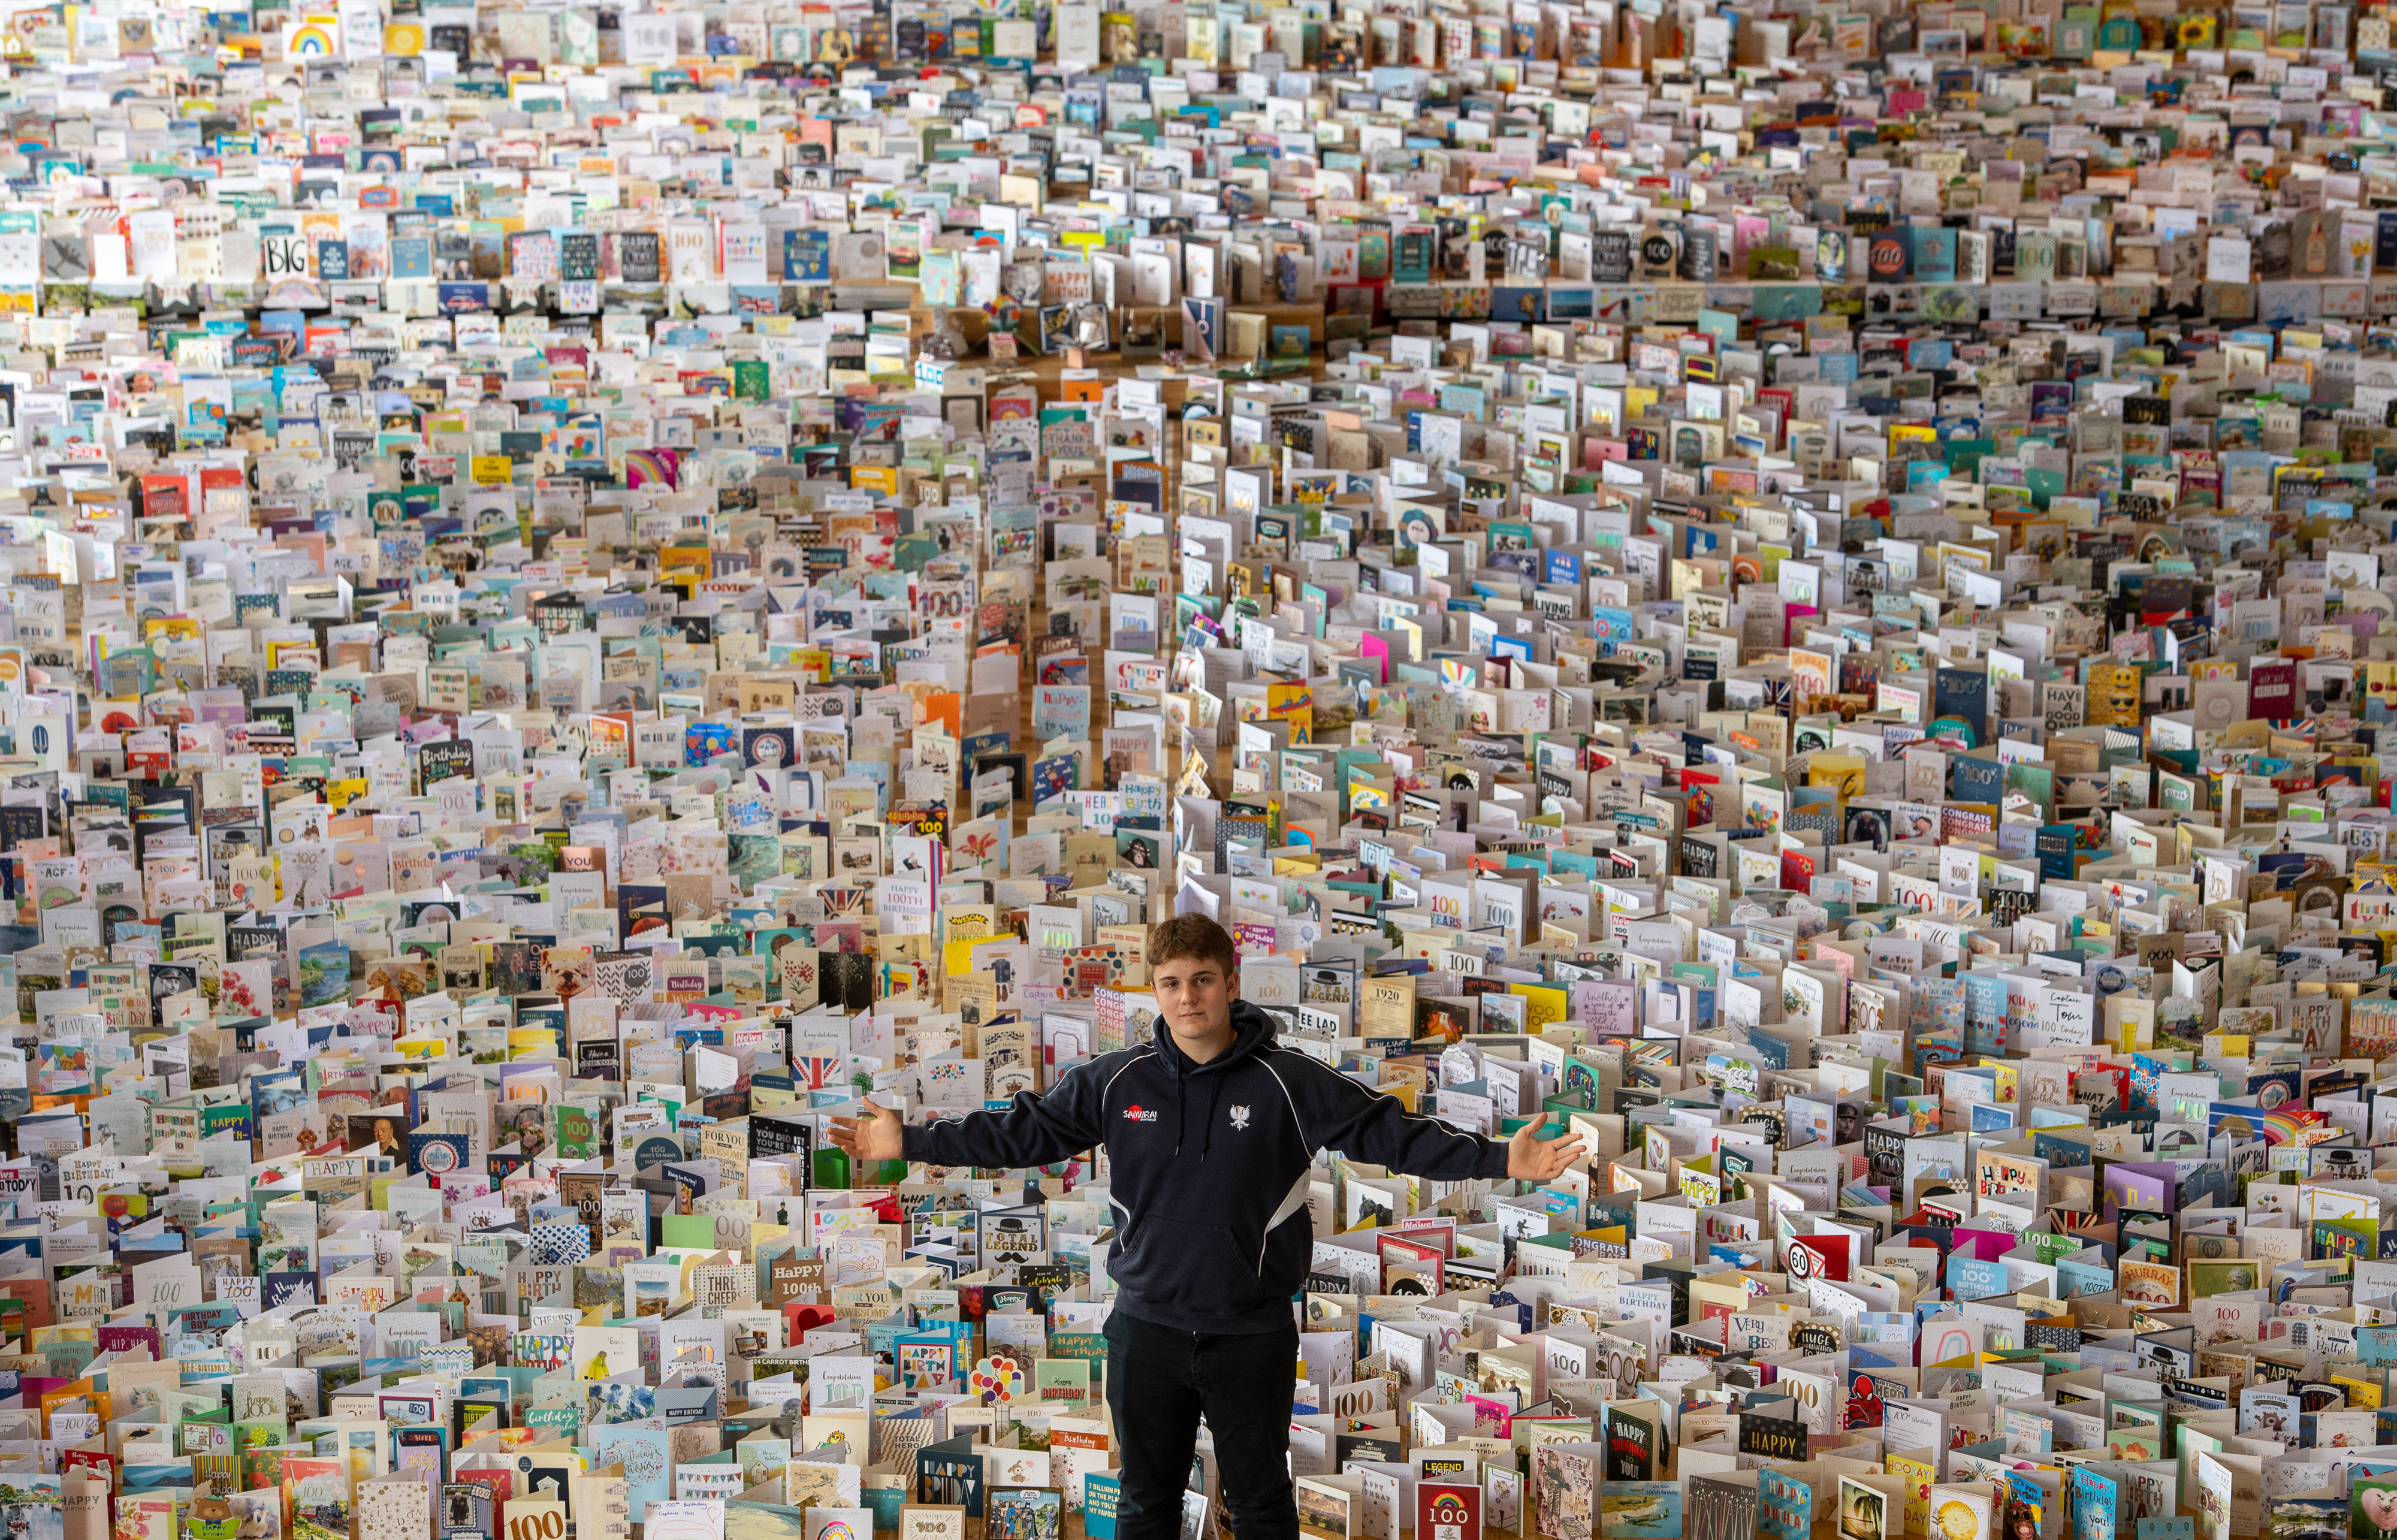 Captain Tom Moore's grandson Benjie, in the Great Hall of Bedford School, Bedfordshire, where over 120,000 birthday cards sent from around the world are being opened and displayed by staff. Captain Moore celebrates his 100th birthday on Thursday. (Photo by Joe Giddens/PA Images via Getty Images)